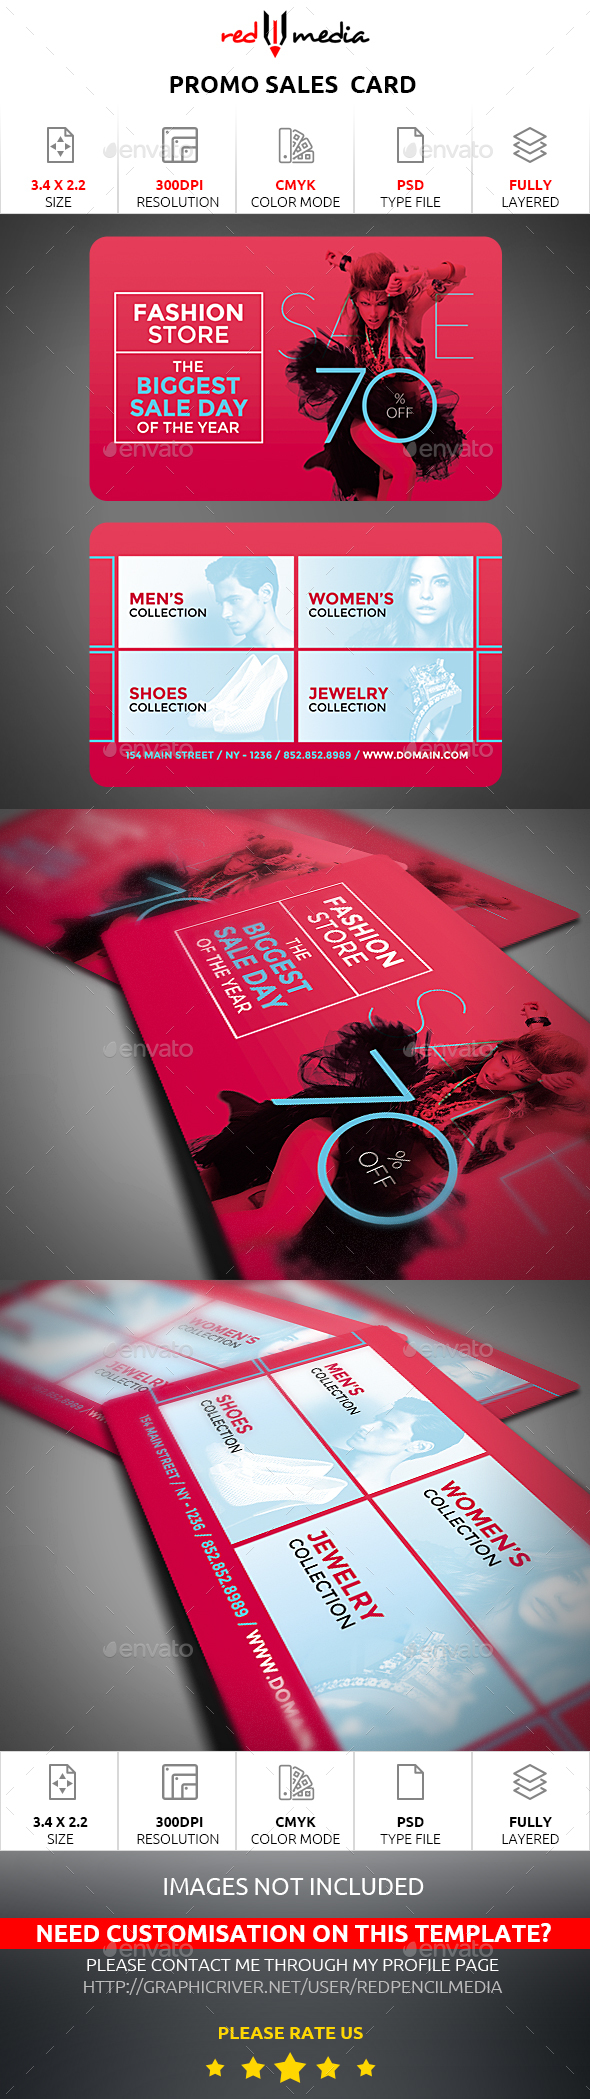 Promo Sales Card - Cards & Invites Print Templates